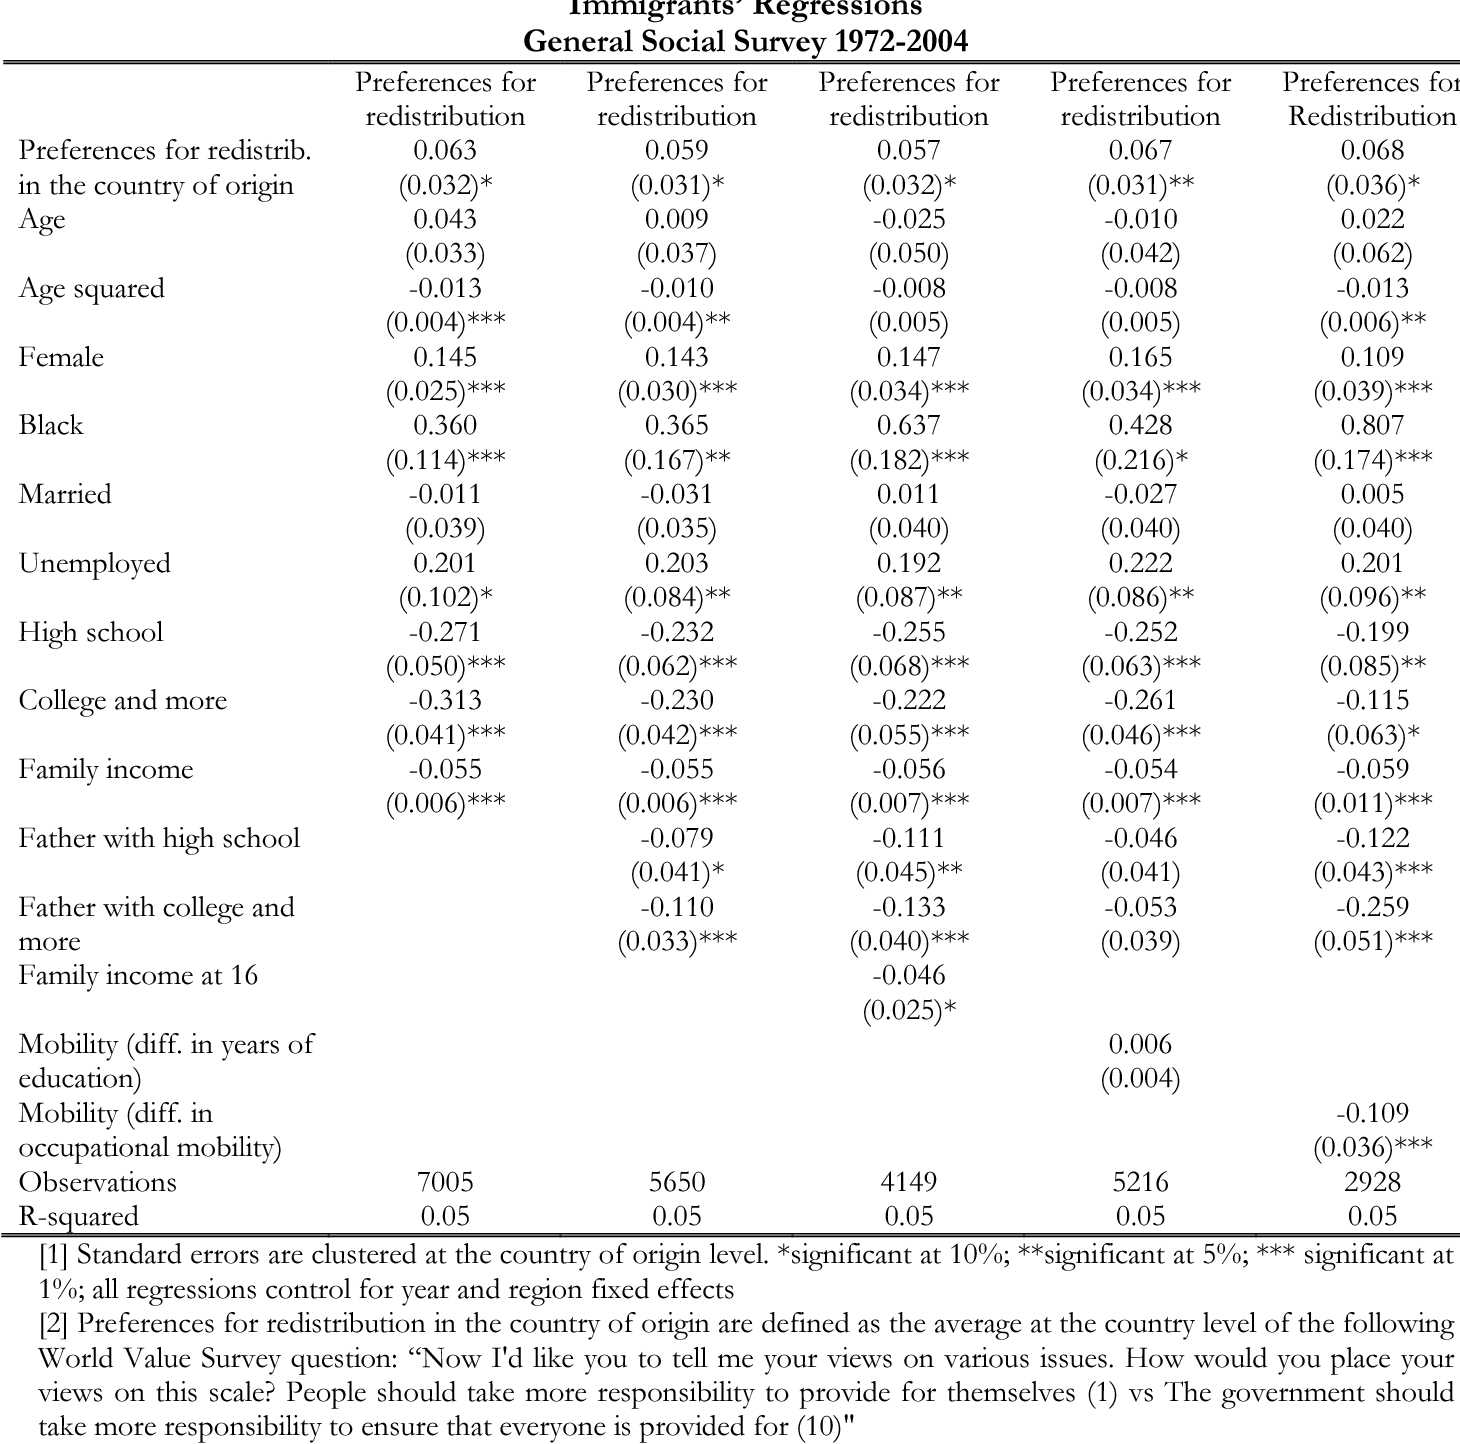 Table 5. Preferences for Redistribution and Cultural Origin Immigrants' Regressions General Social Survey 1972-2004